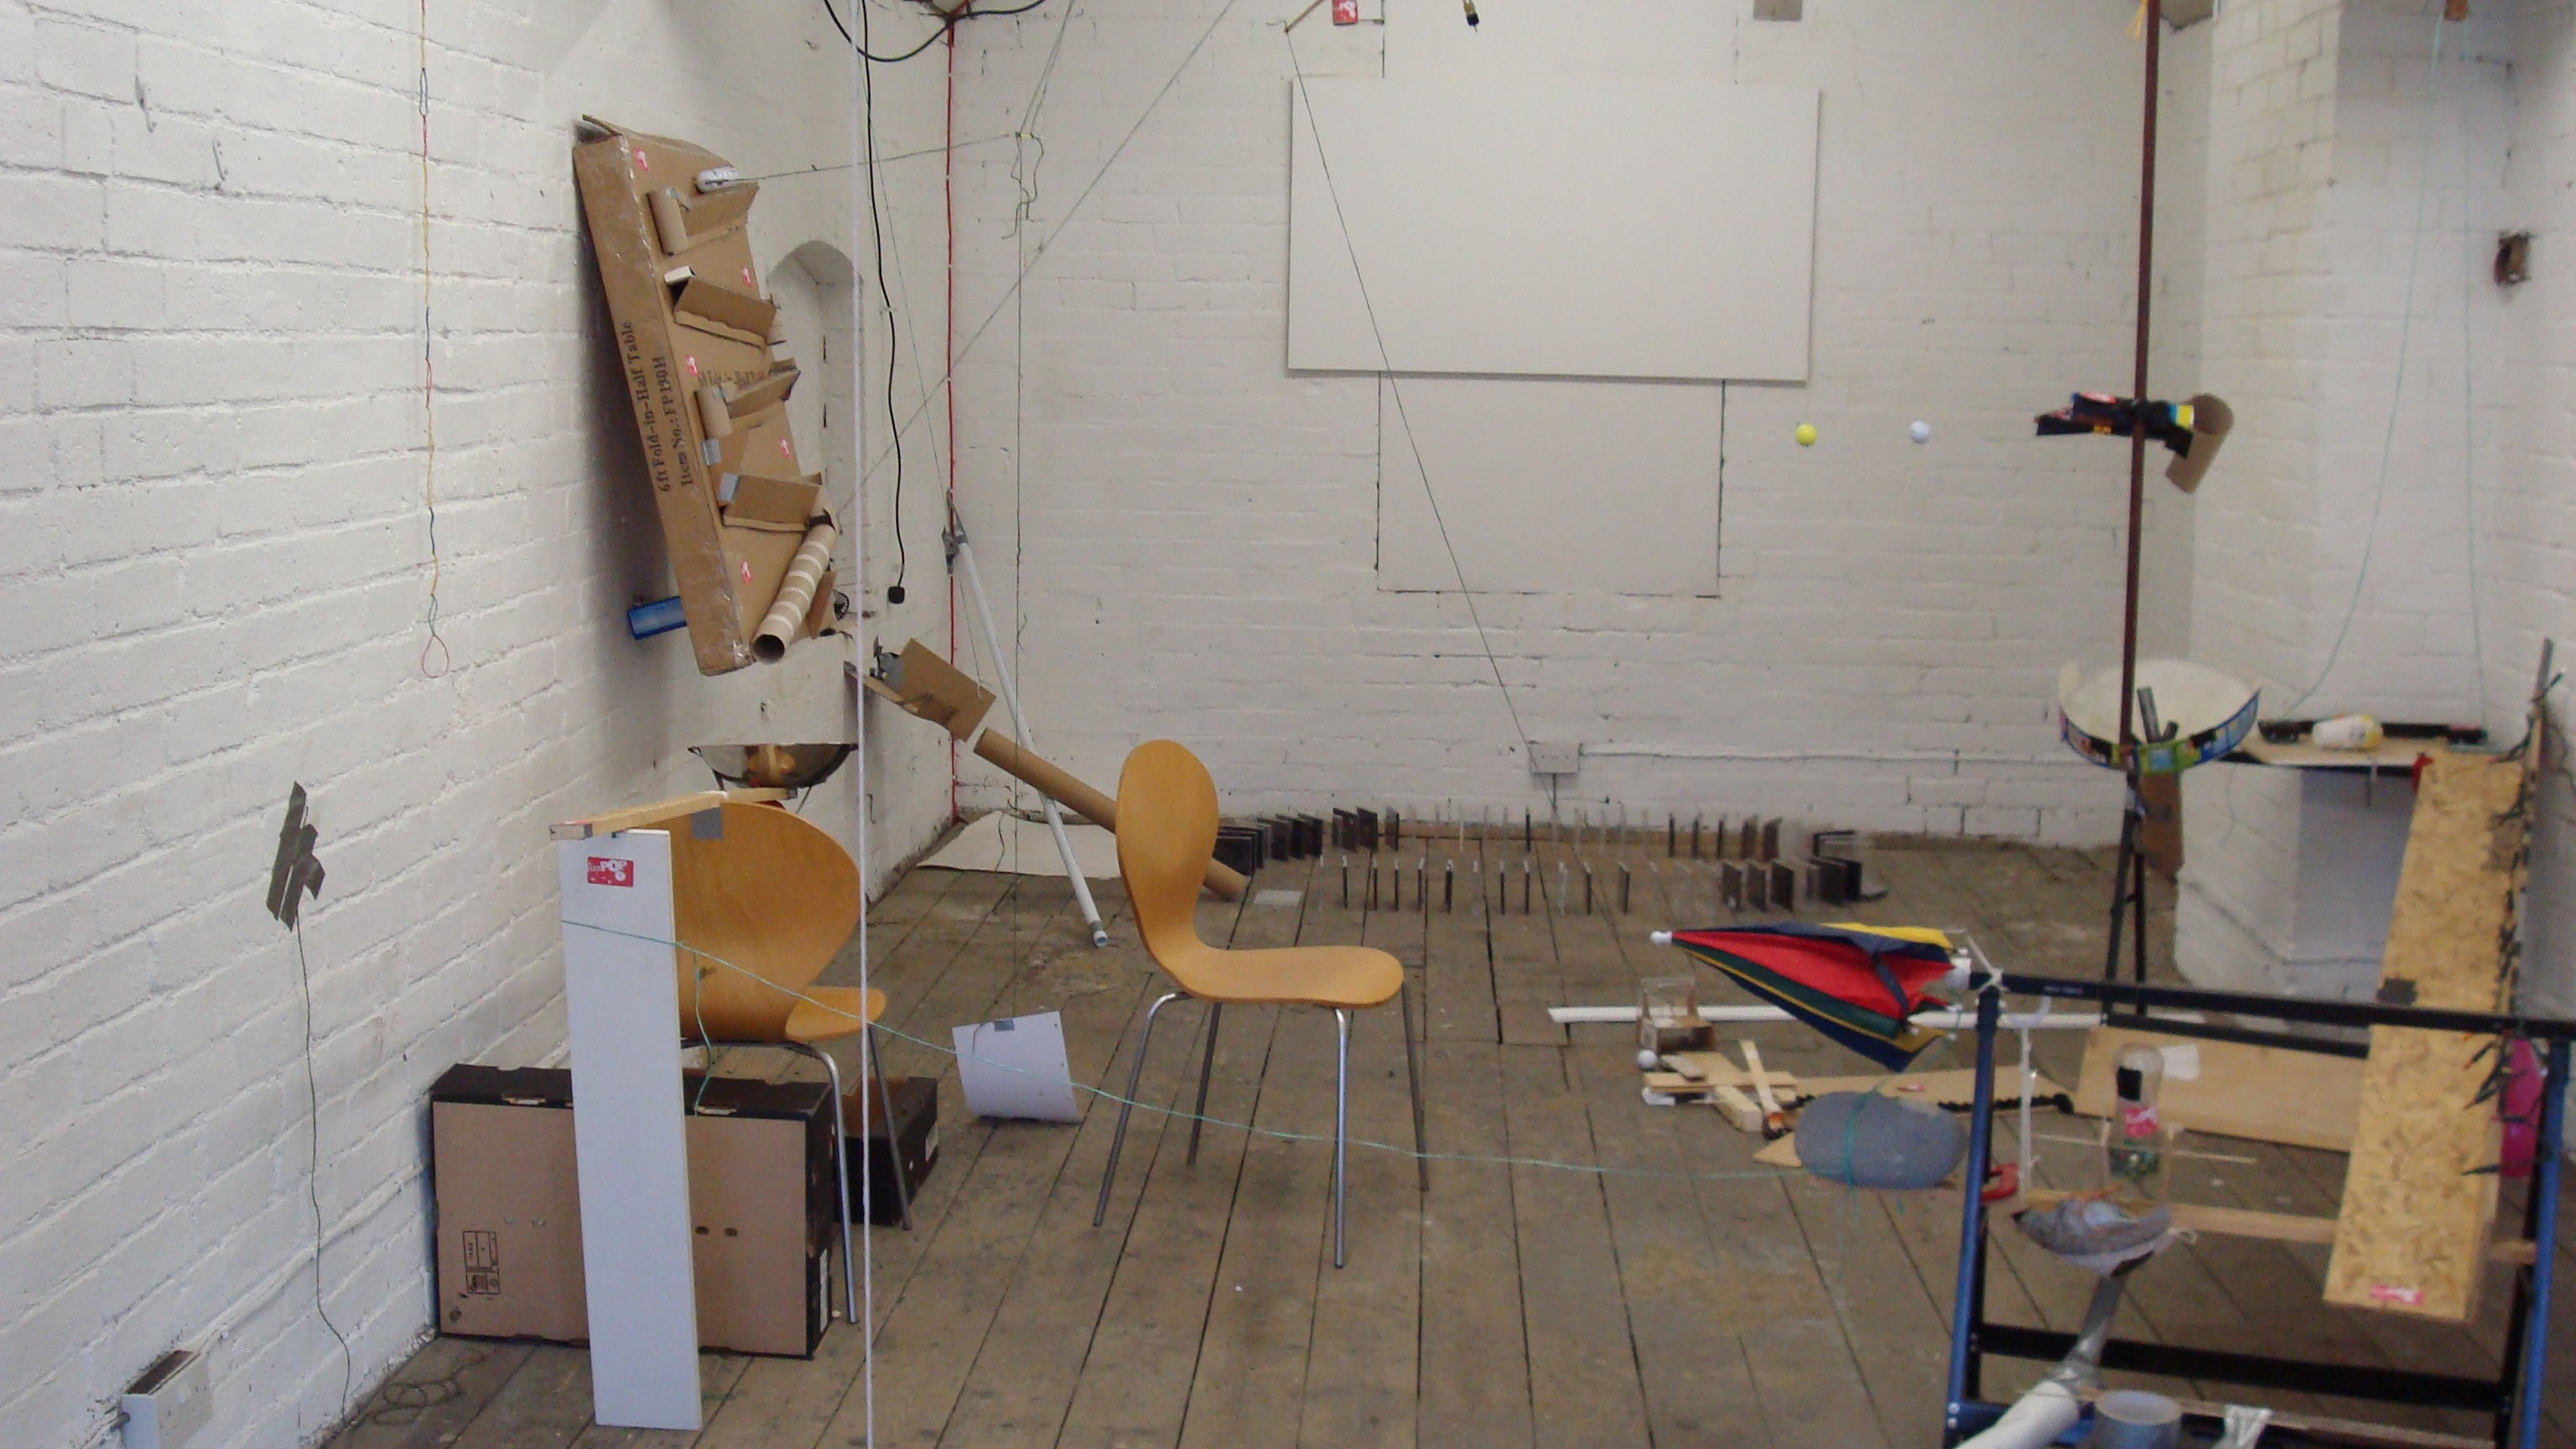 How to Teach a Robot to Build a Rube Goldberg Machine